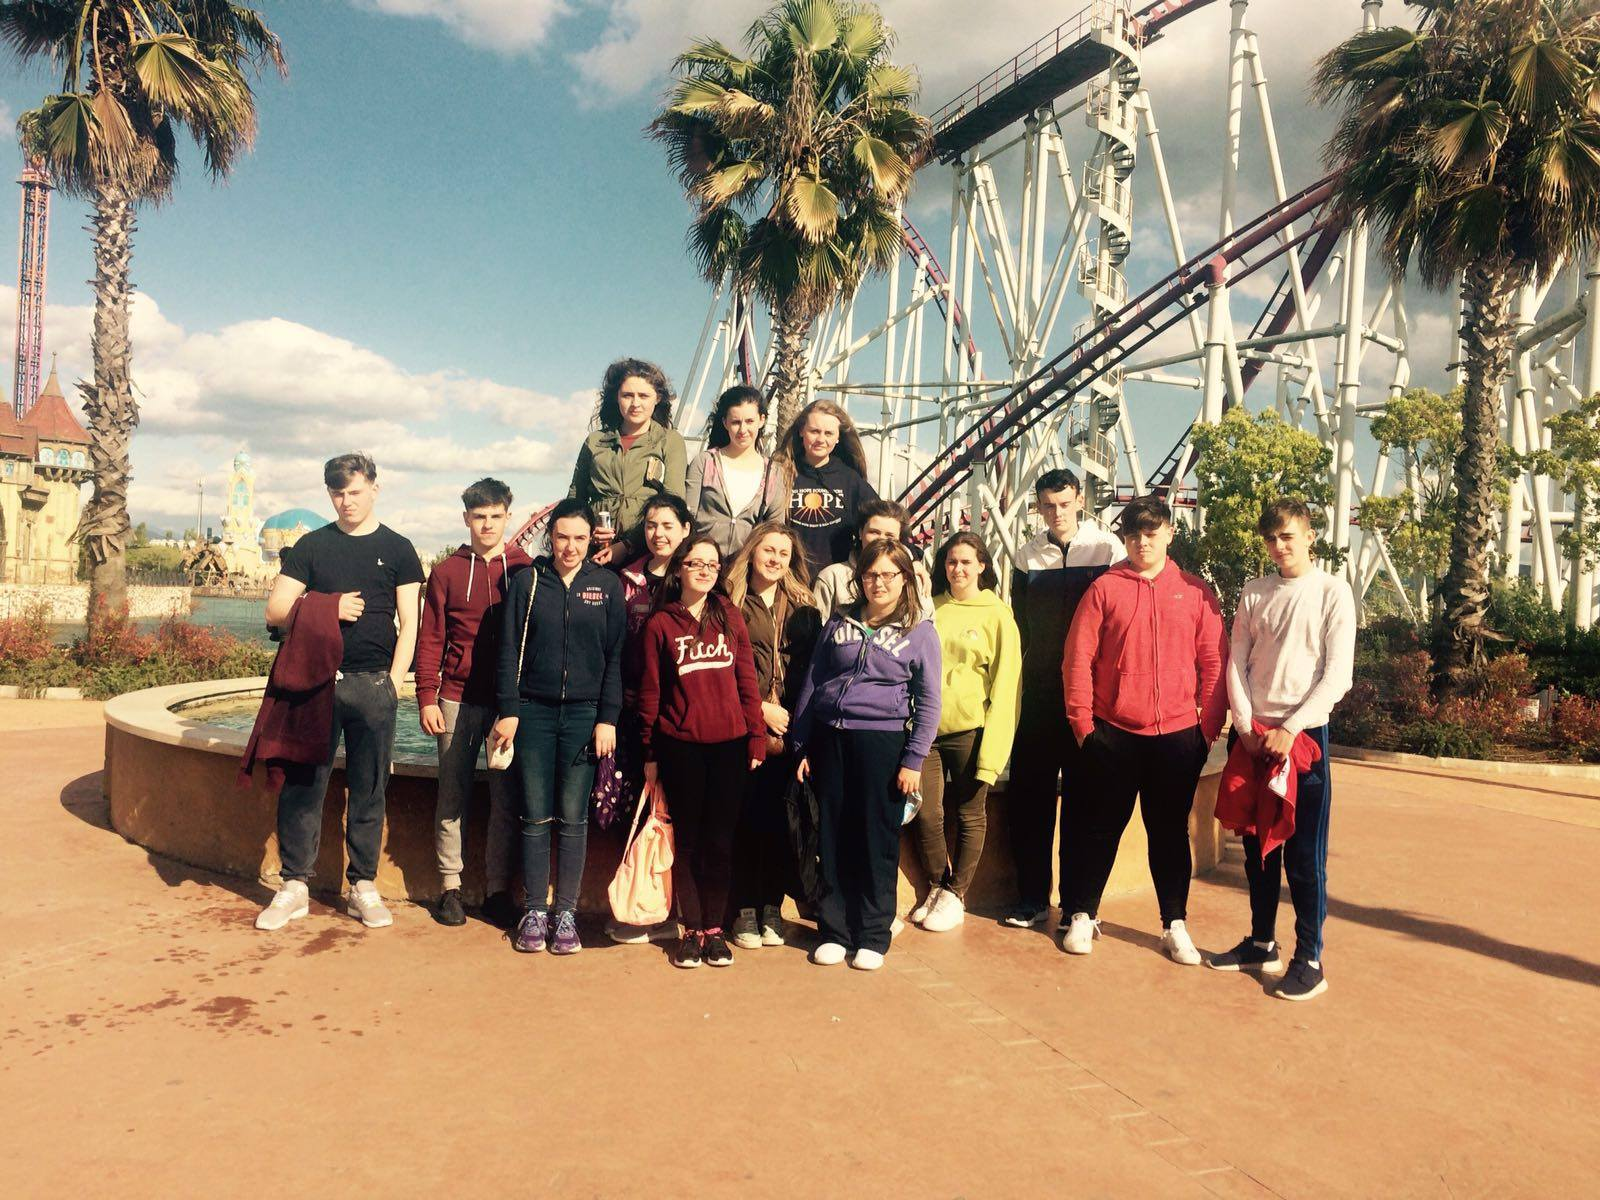 April 2016: Desmond College TY Students in Rainbow Land Amusement Park